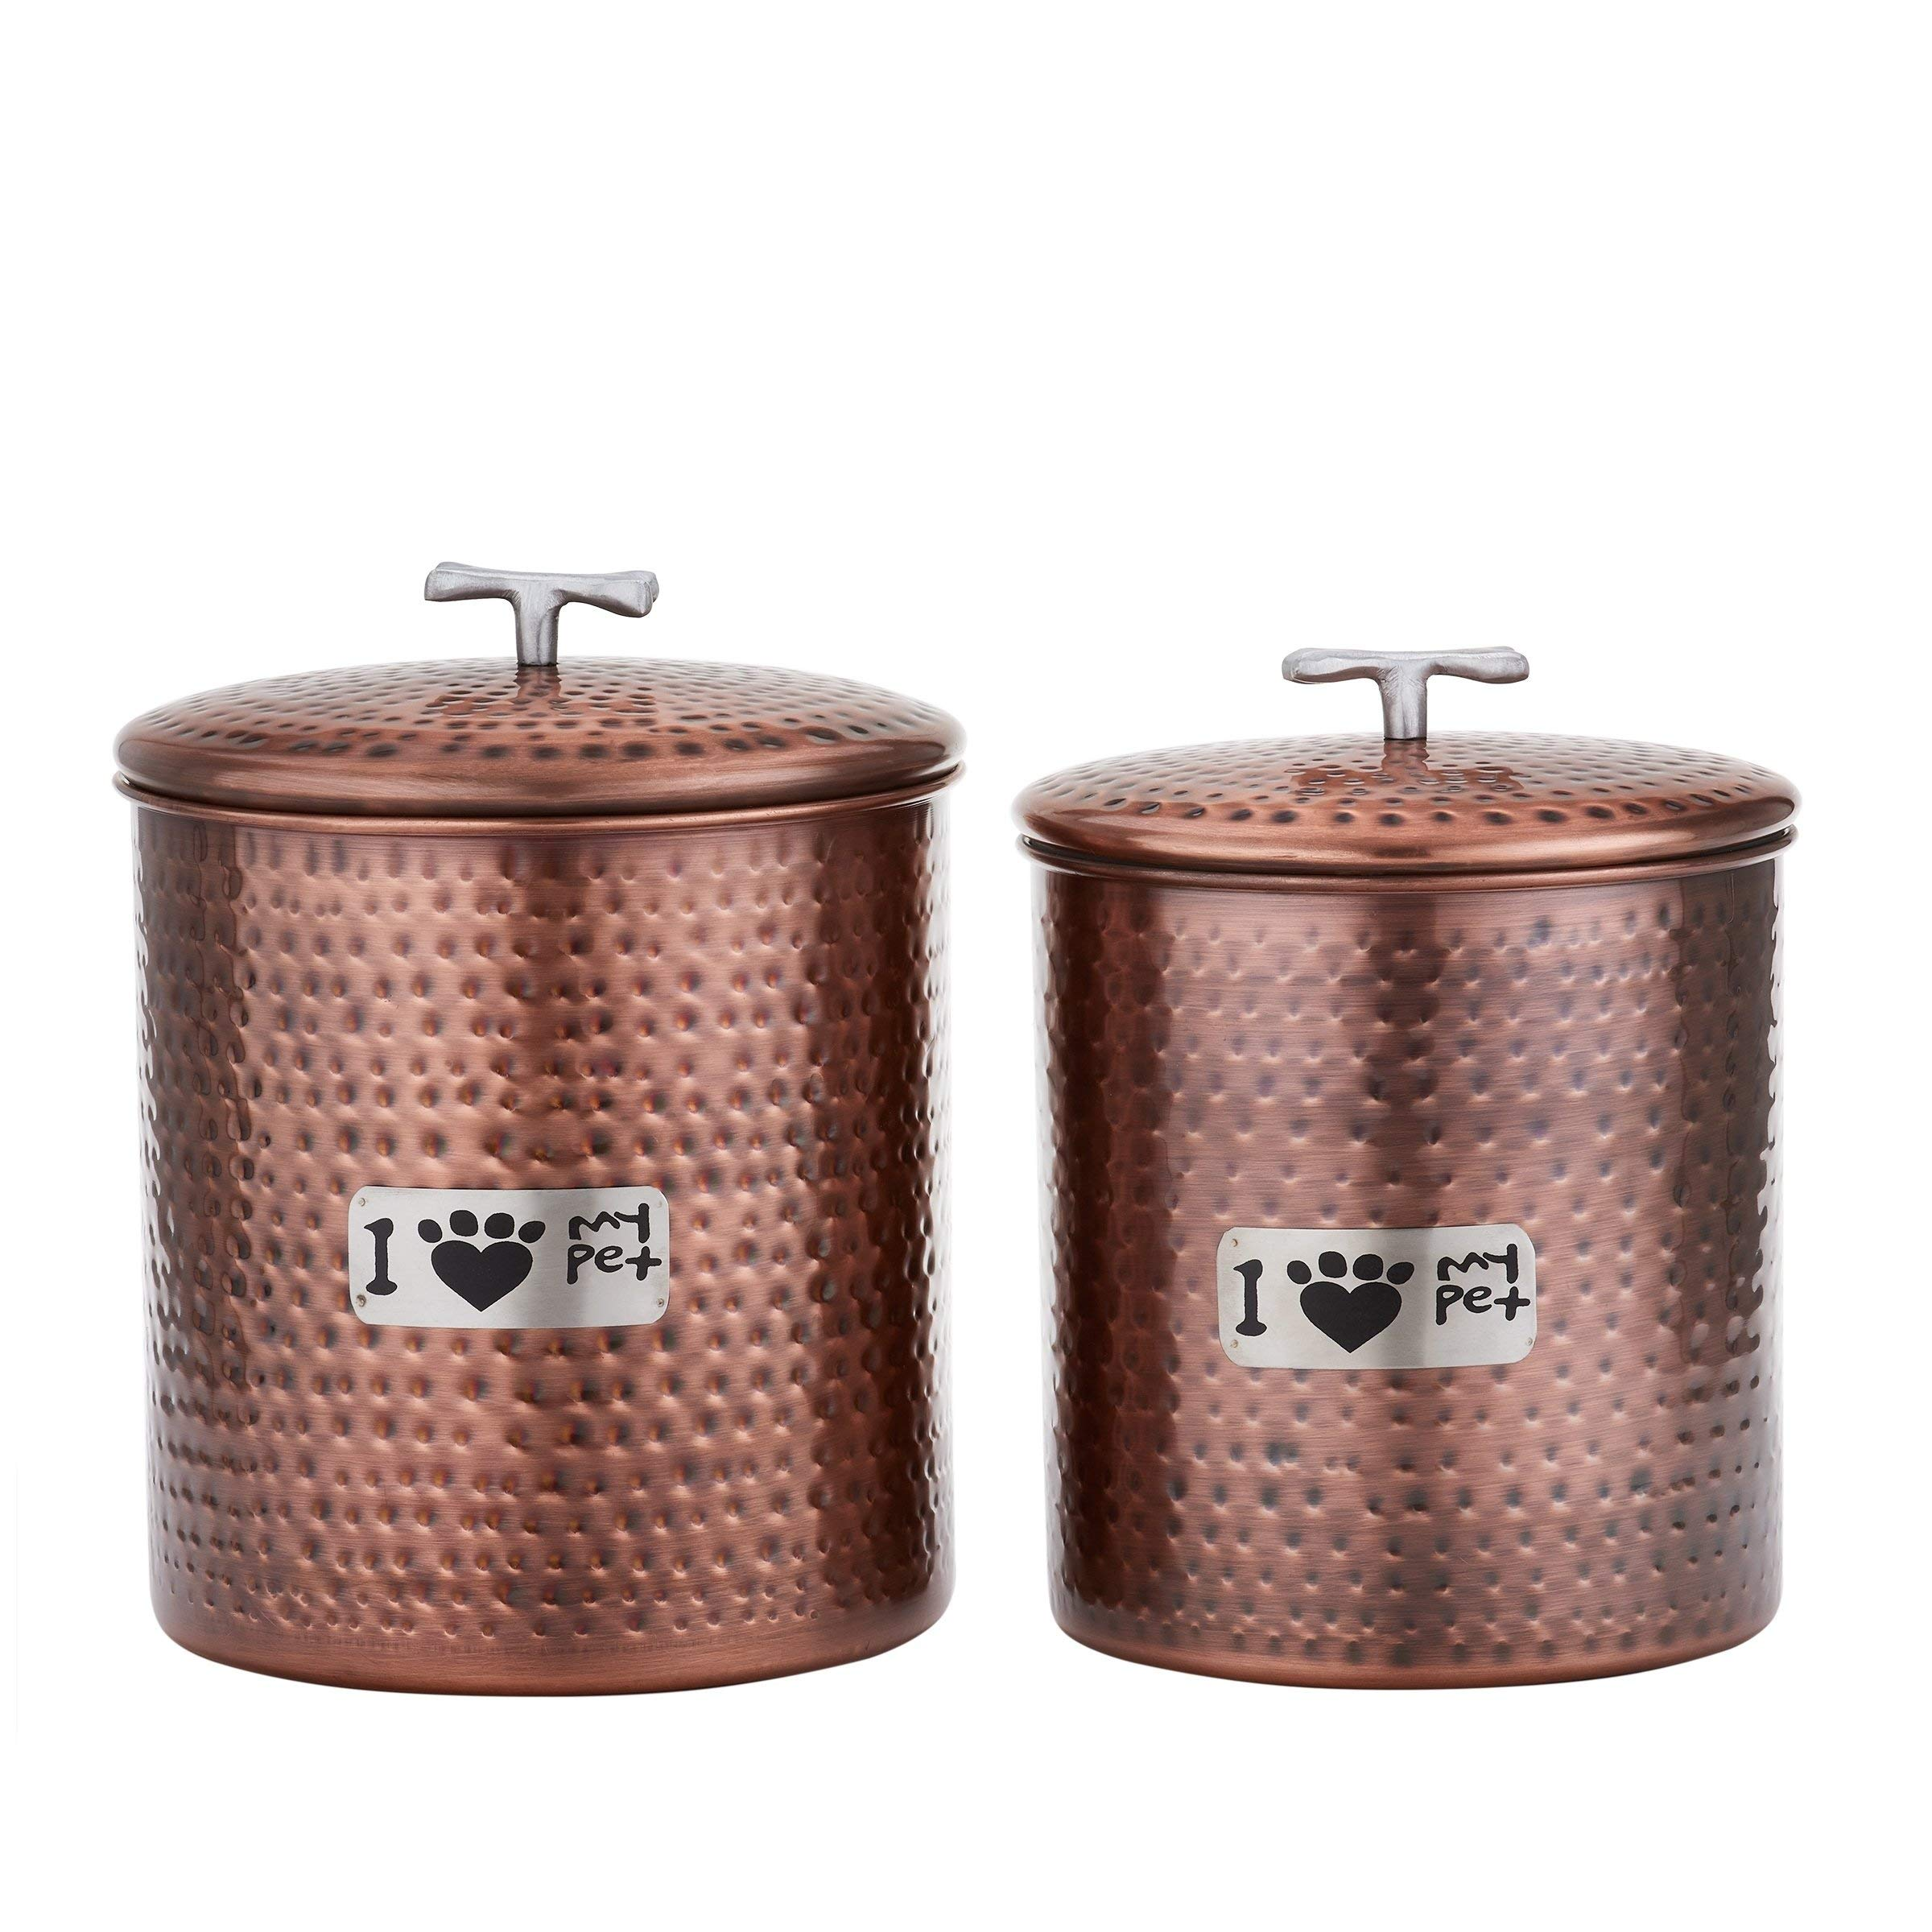 MISC Antique Hammered Copper Canister Set of 2, Brown Pet Jars Kitchen Decor Dog Treat Containers, Stainless Steel